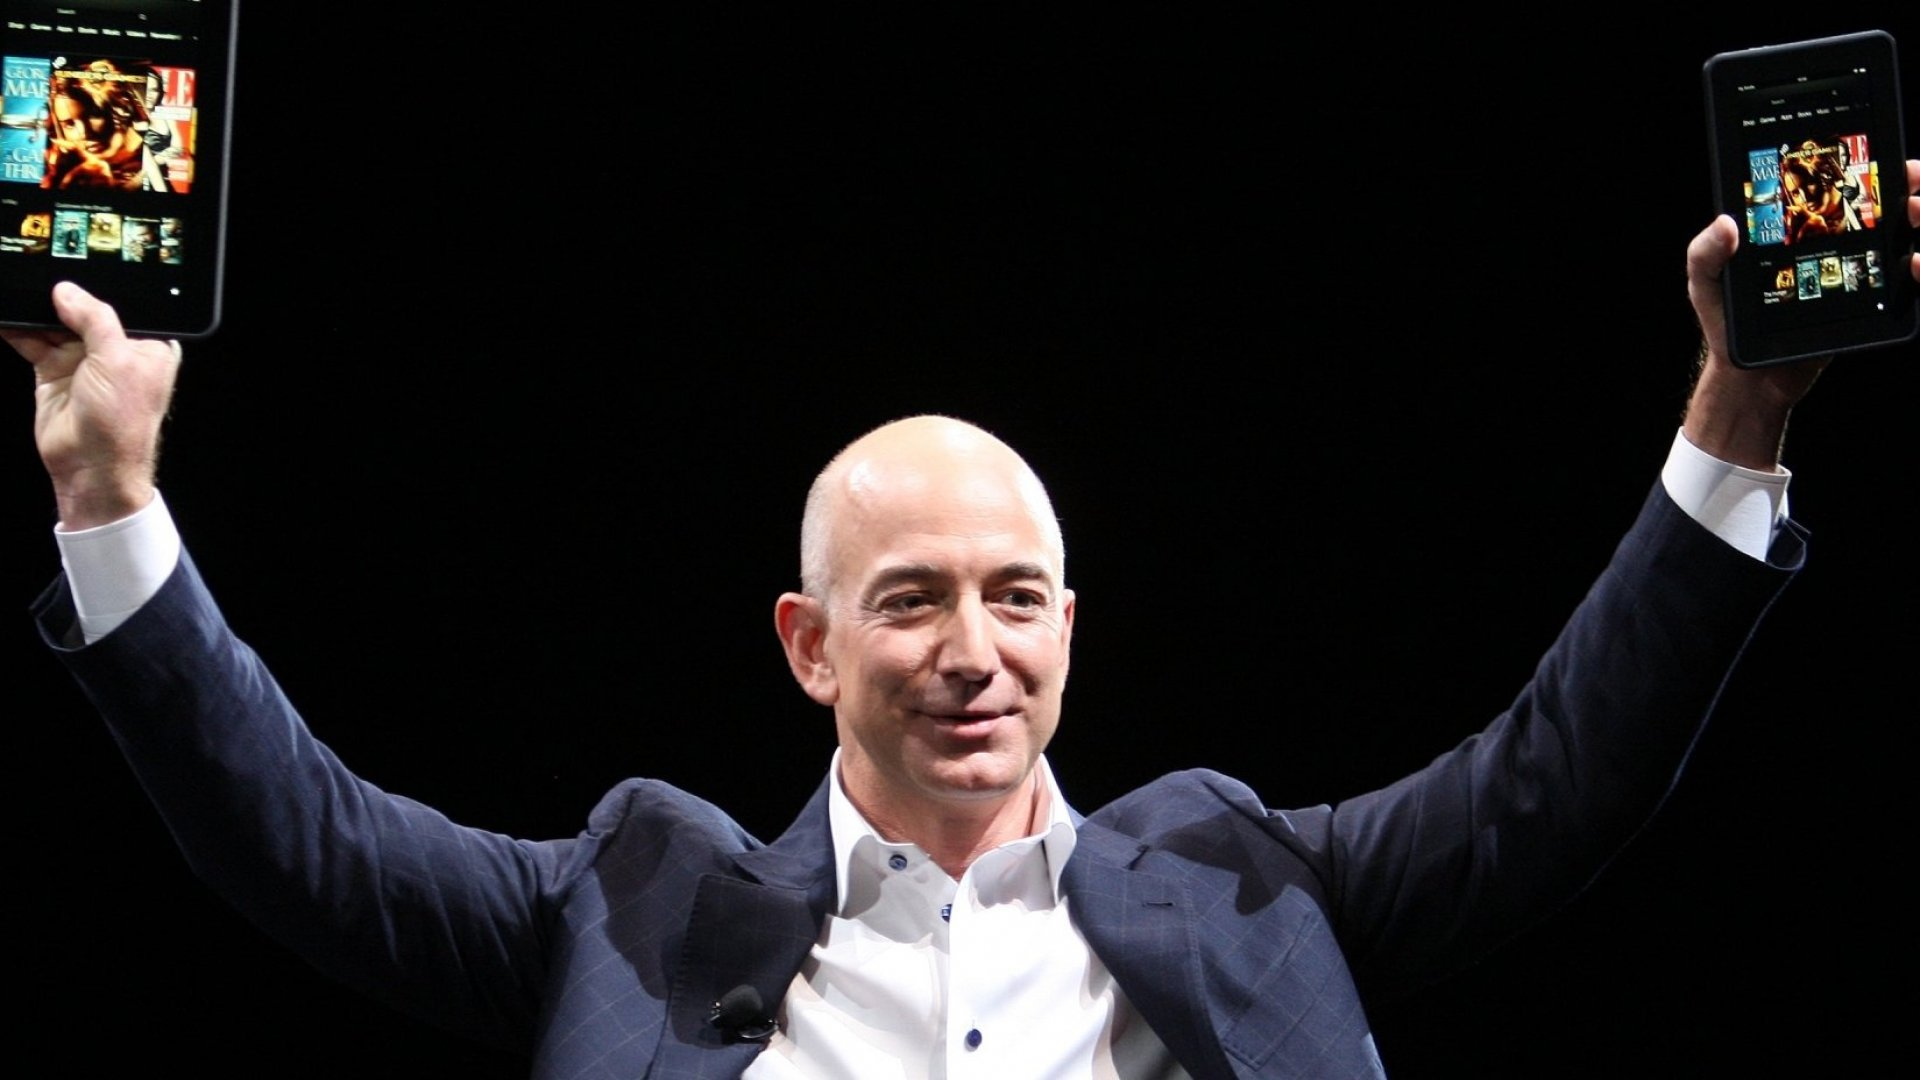 Jeff Bezos Solved the Customer Experience Puzzle. Can You?